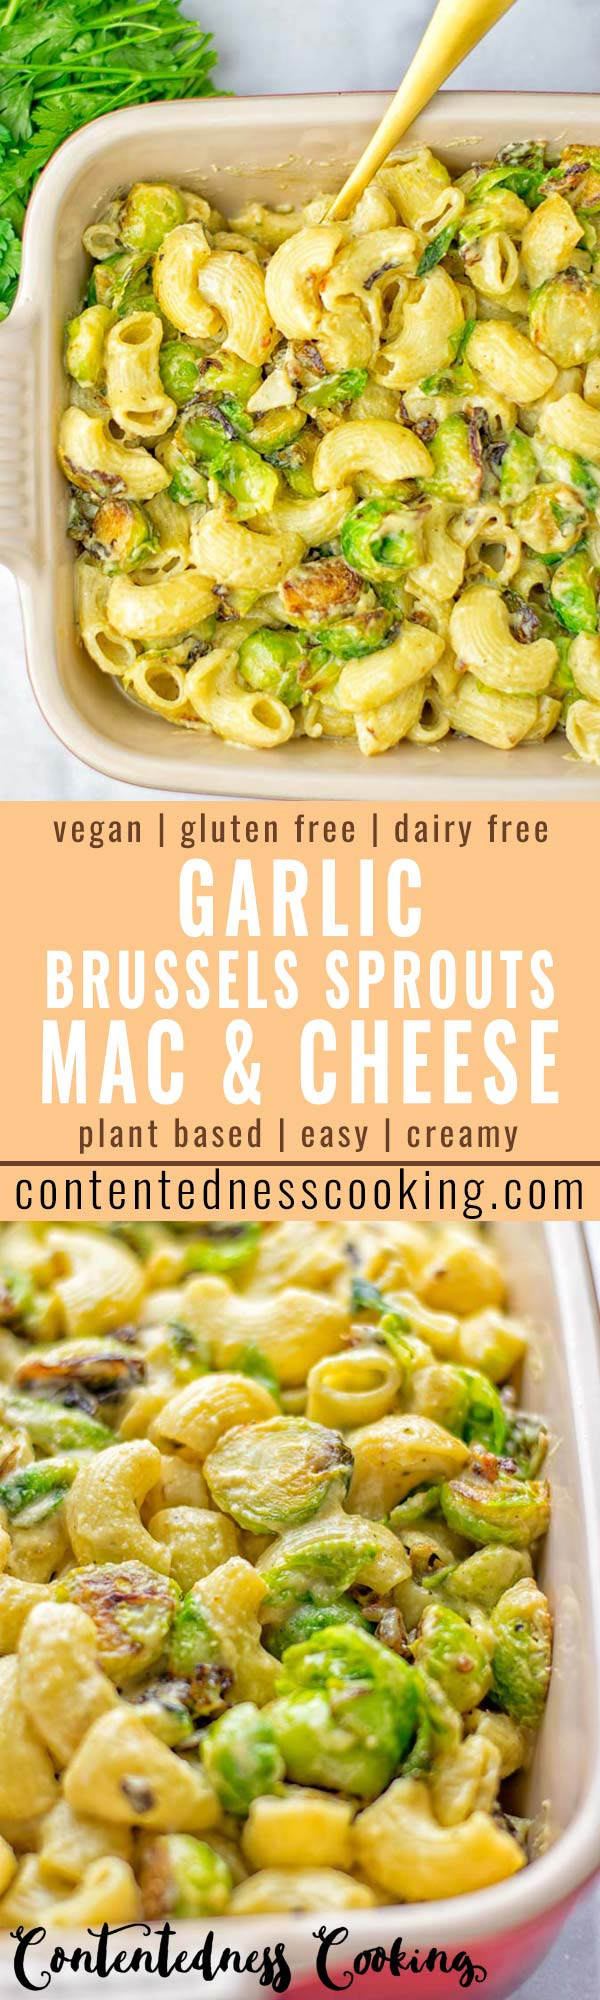 This Garlic Brussels Sprouts Mac and Cheese is entirely vegan, gluten free, and super easy to make. It's an amazing comfort food for dinner, lunch, meal prep, work lunches, date nights and of course the holidays. Everyone will get addicted to this from the first to the last bite, try it now! #vegan #glutenfree #dairyfree #vegetarian #mealprep #dinner #lunch #worklunchideas #holidays #macandcheese #contentednesscooking #pasta #thanksgiving